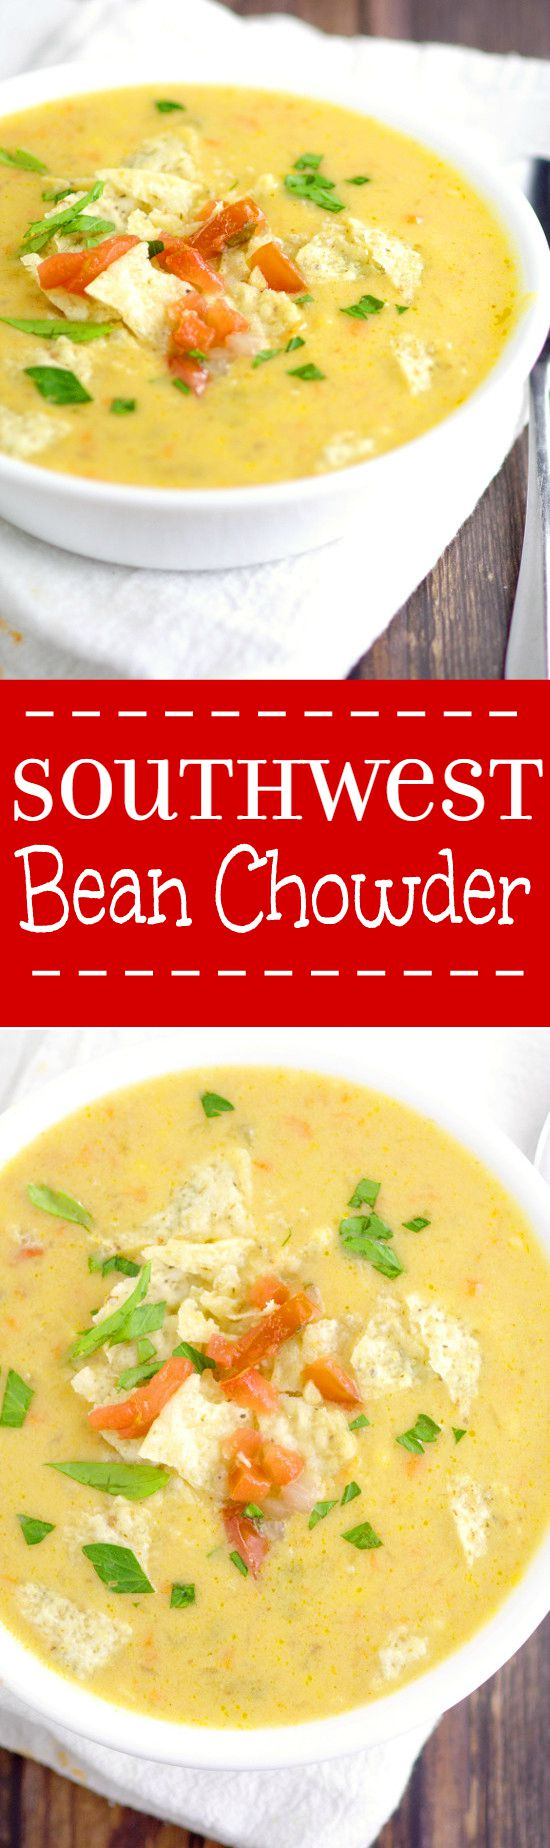 Southwest Bean Chowder Recipe is a creamy soup recipe that tastes like chicken tortilla soup! Creamy, cheesy,... So good! Definitely one of my favorites! This soup recipe would also be delicious with chicken. Love the tortilla chips on top!